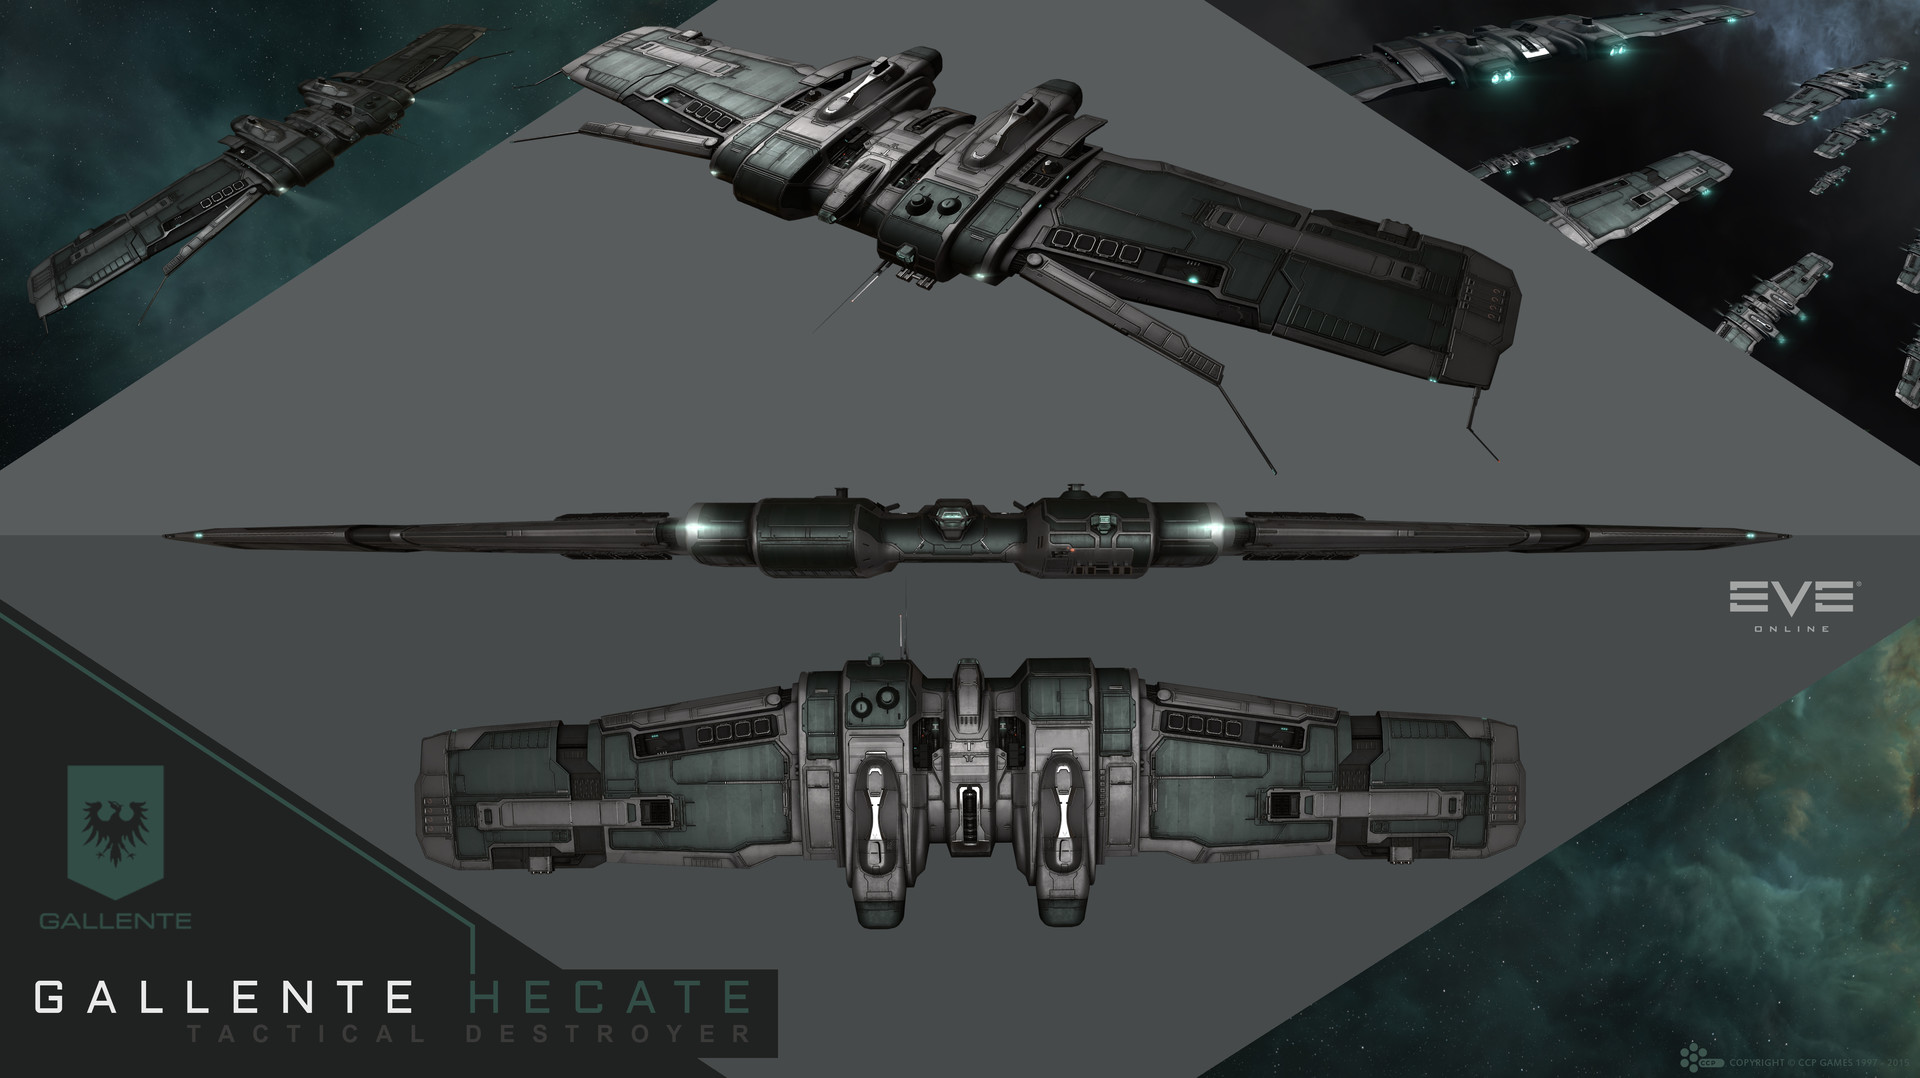 Eve online hecate release date